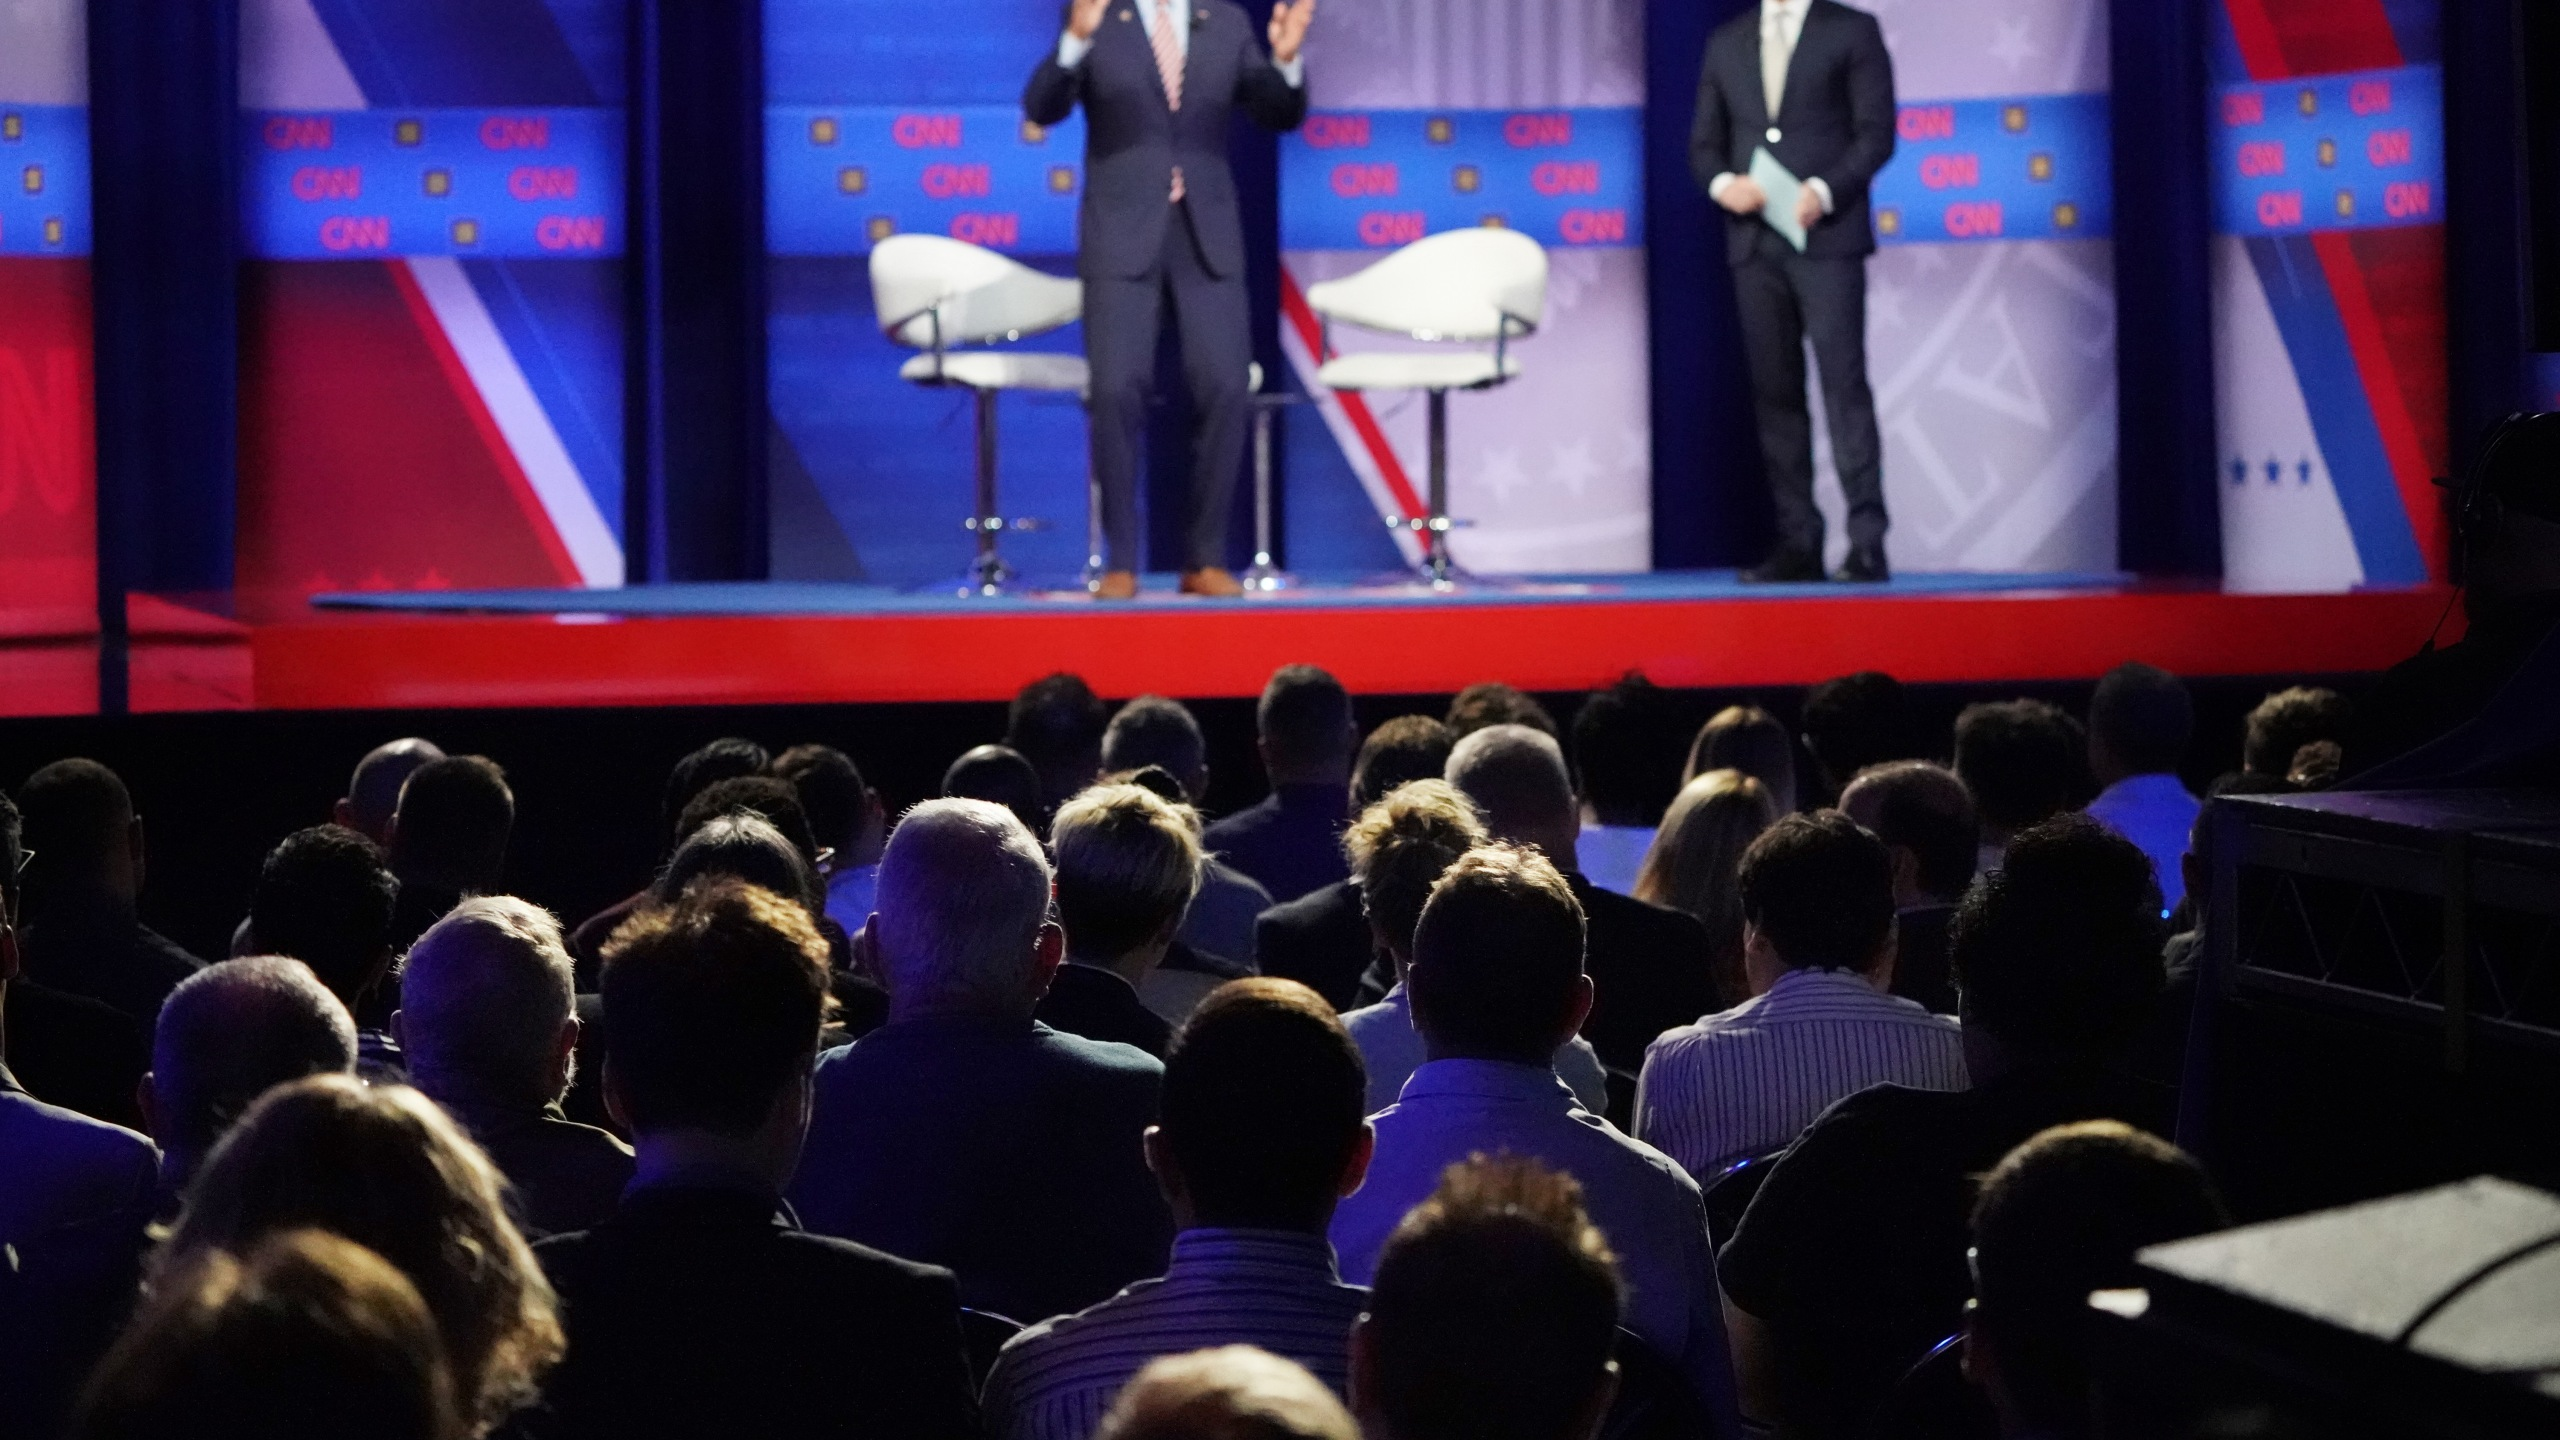 Audience members watch as Democratic presidential candidate and former Vice President Joe Biden speaks, as CNN moderator Anderson Cooper looks on, at the Human Rights Campaign Foundation and CNN's presidential town hall focused on LGBTQ issues in Los Angeles on Oct. 10, 2019. (Credit: Mario Tama / Getty Images)